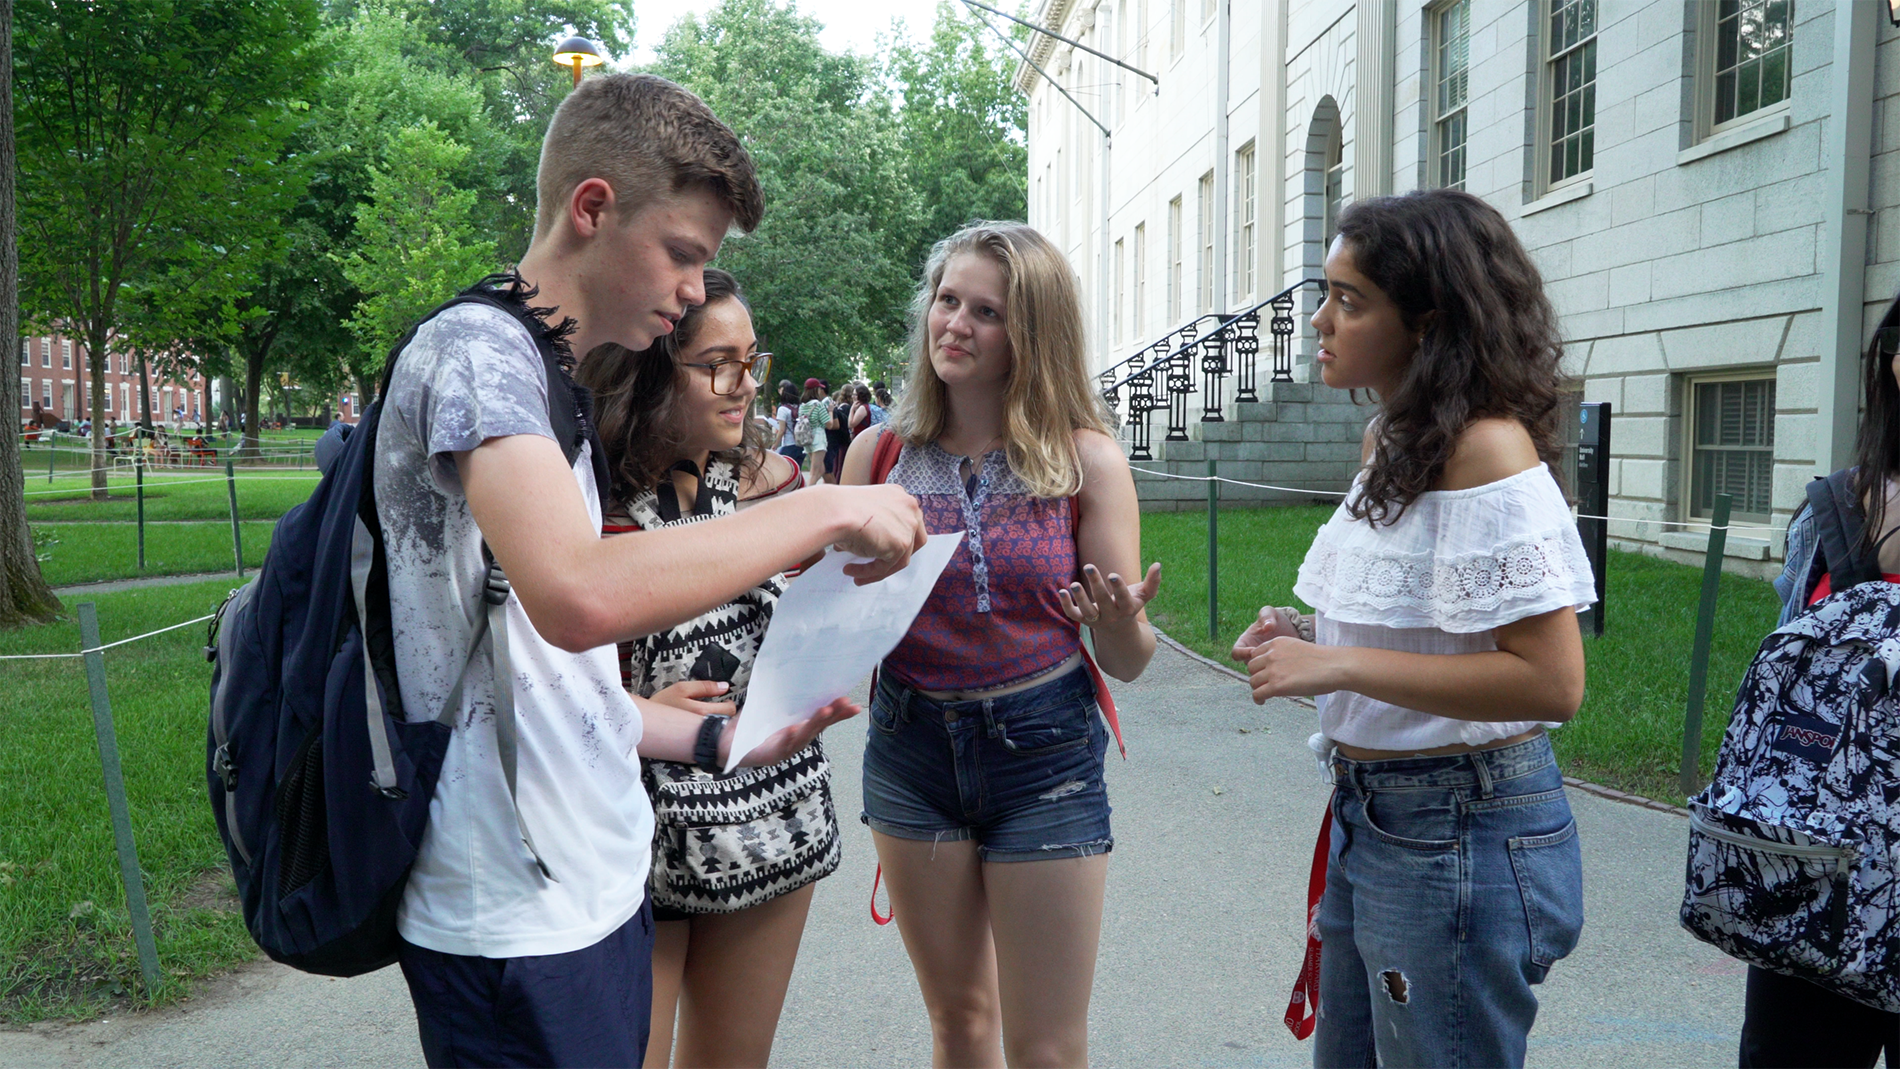 Summer Program - College Application | Harvard University: Summer Programs for High School Students